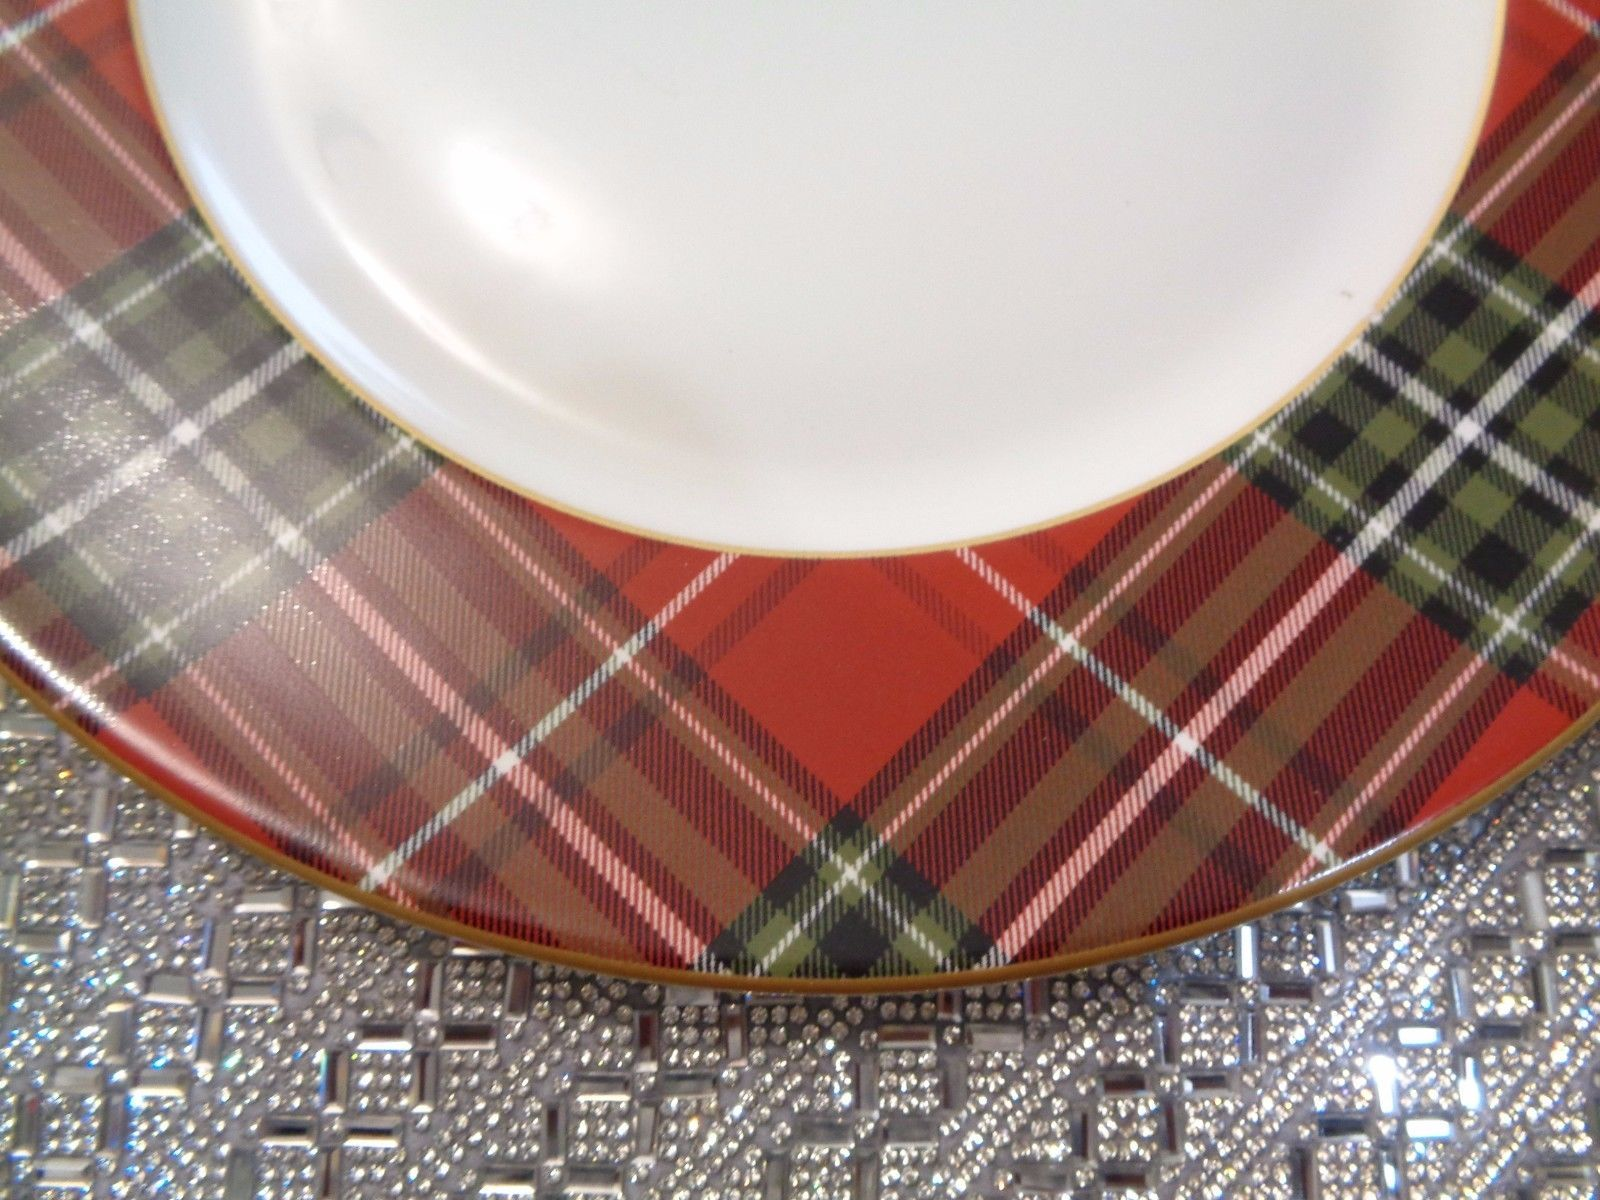 222 FIFTH WEXFORD CHRISTMAS PLAID GOLD RED DINNER PLATES SET OF 12 NEW RARE & 222 fifth wexford christmas plaid gold red dinner plates set of 12 ...